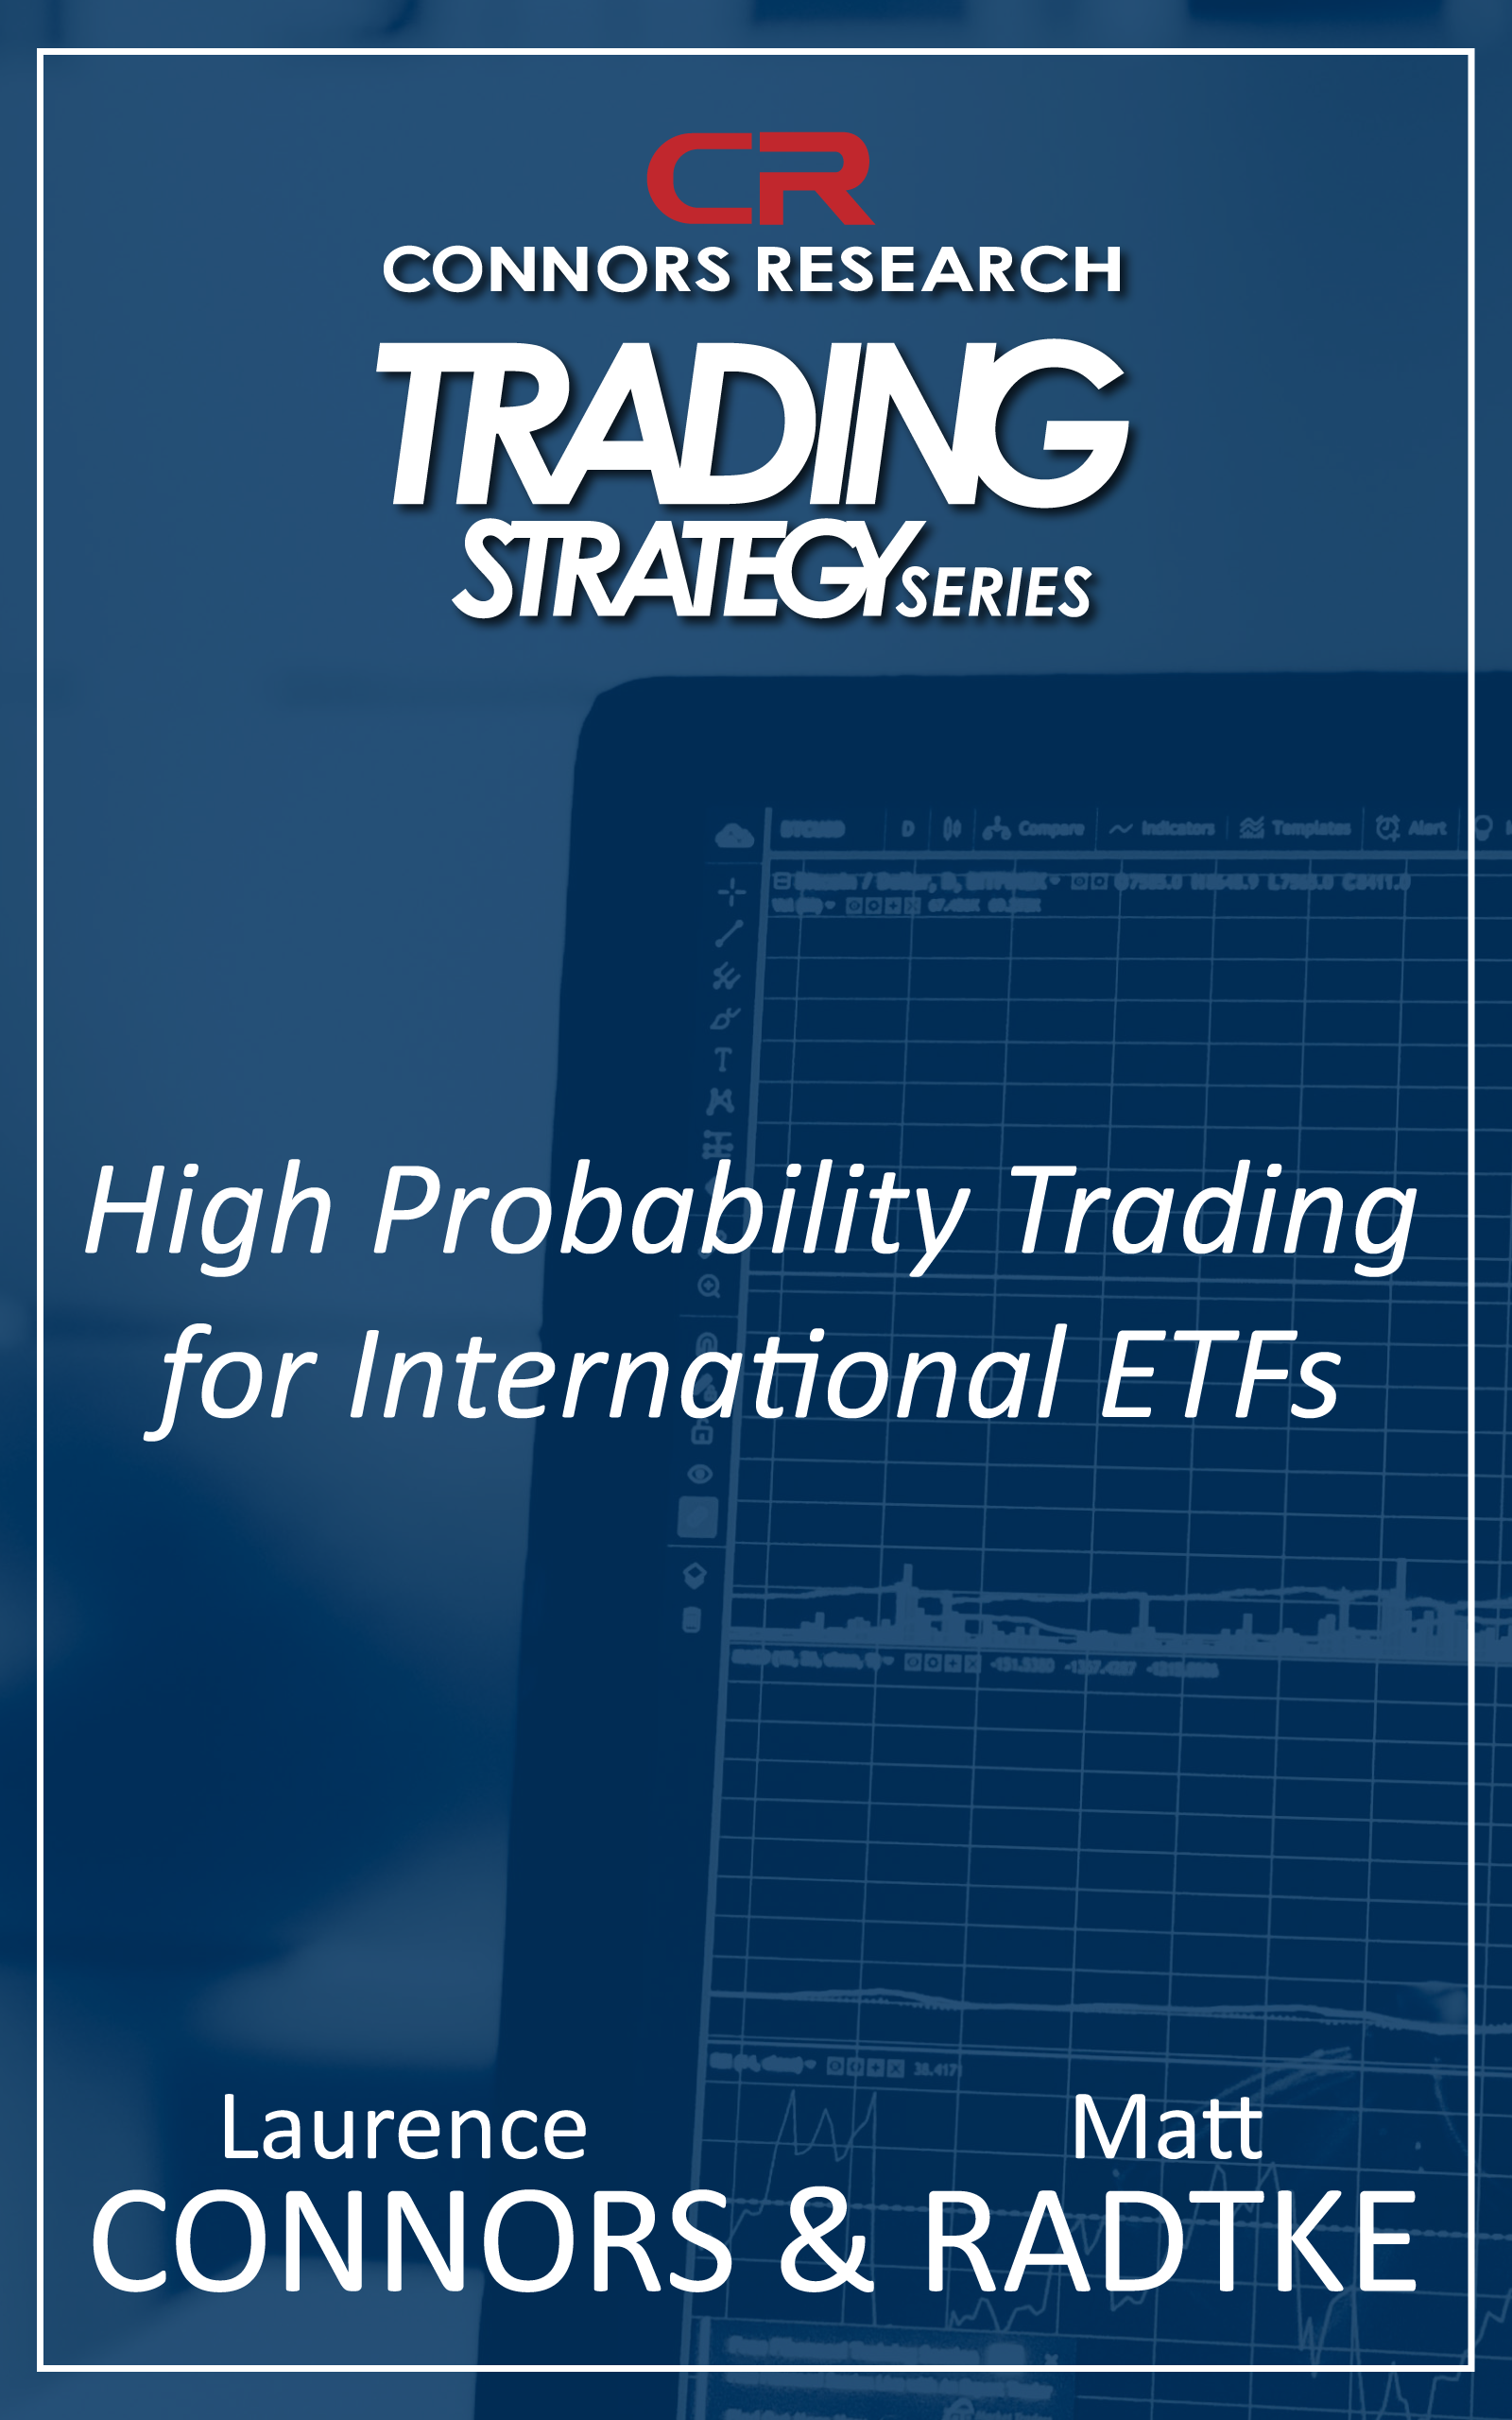 Connors Research Trading Strategy Series: High Probability Trading for International ETFs BOO-NDOW-D